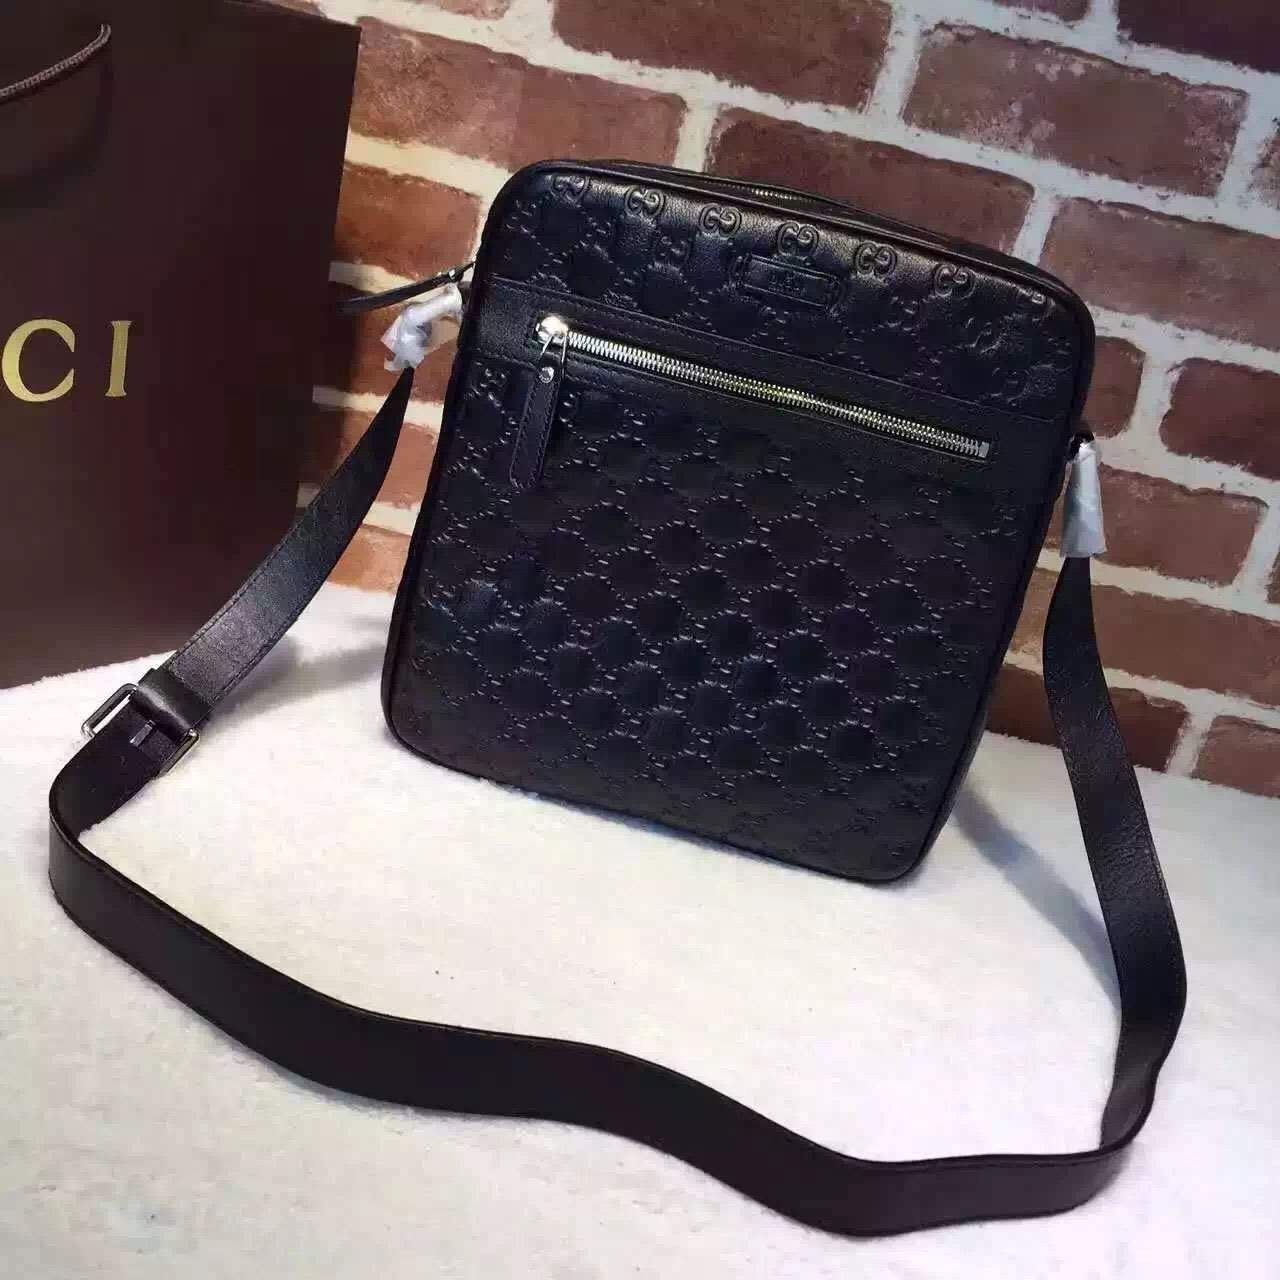 Gucci Stylish Black